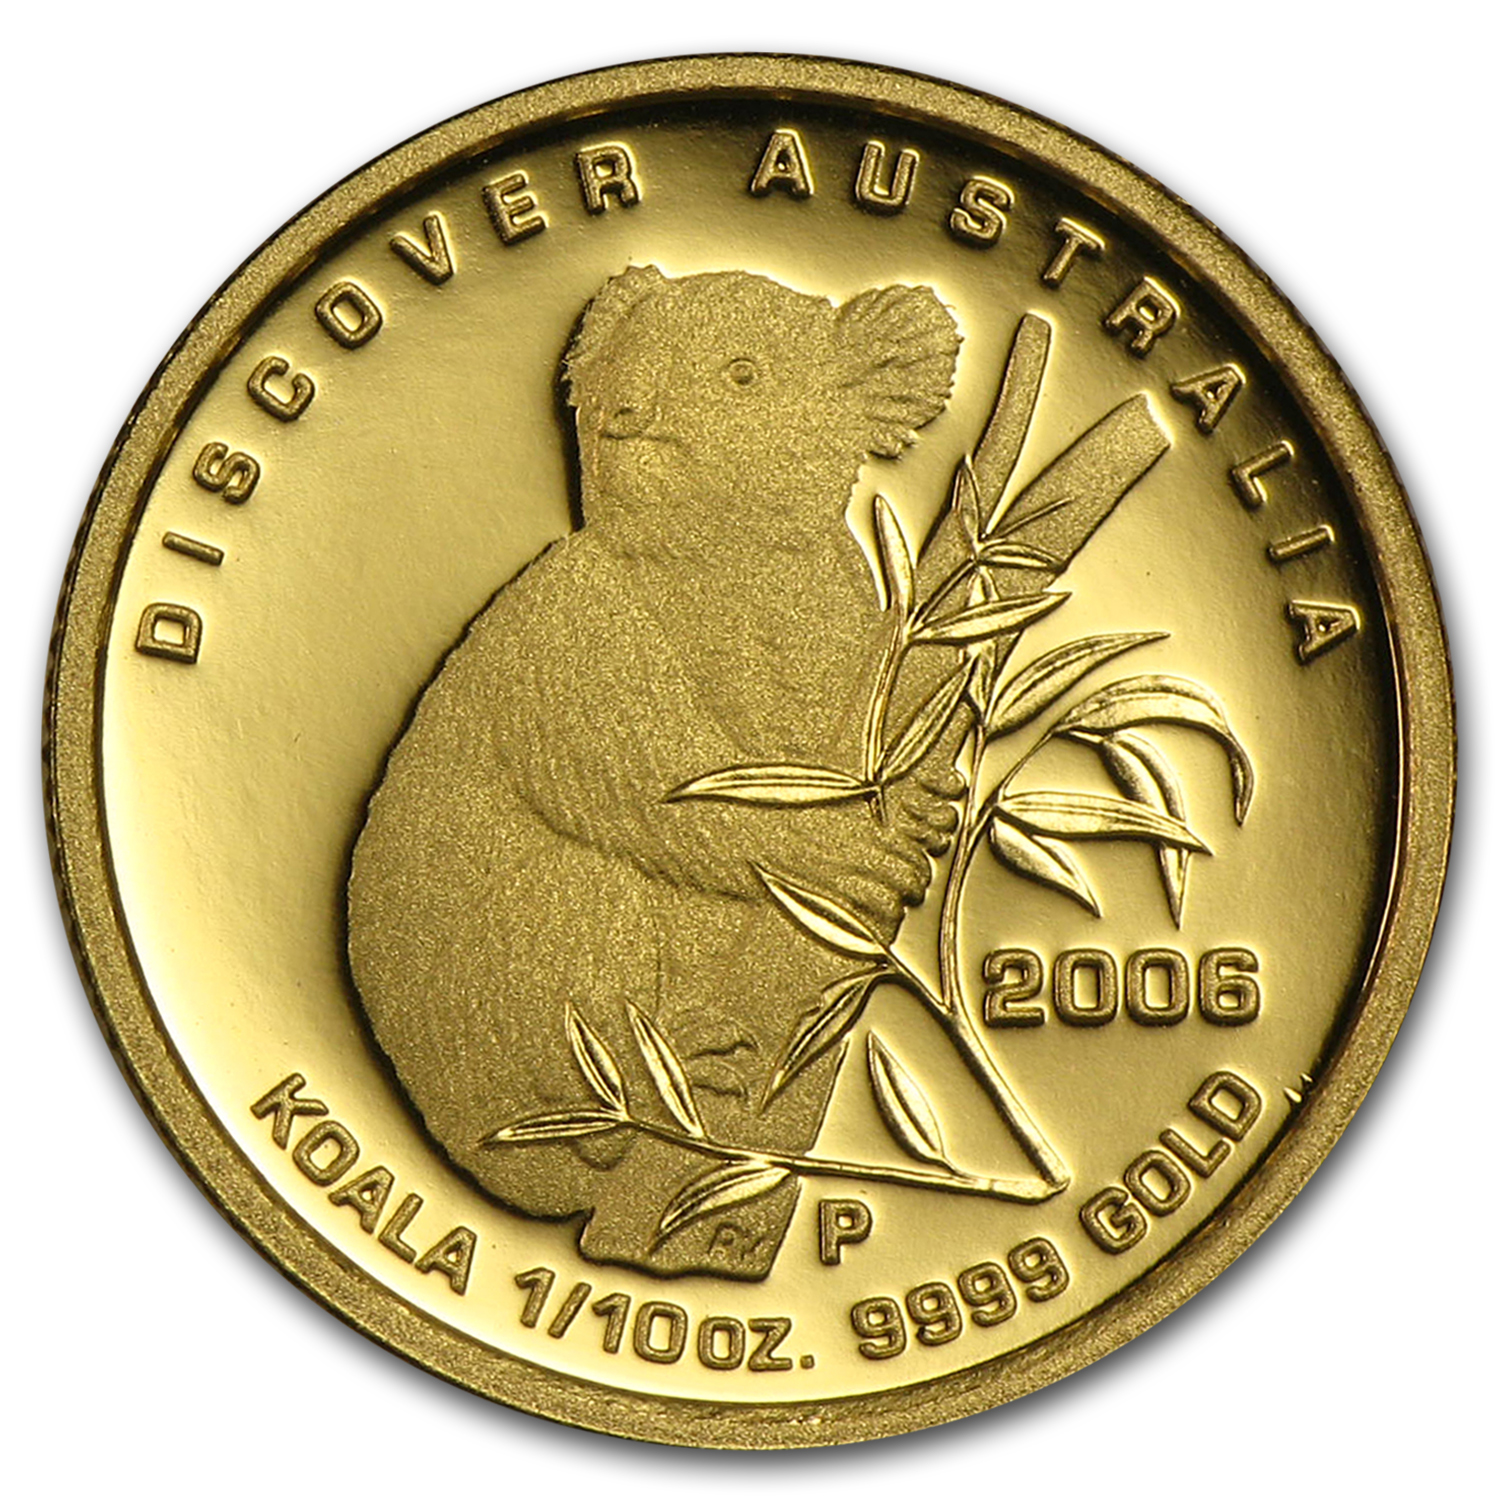 2006 1/10 oz Proof Gold Discover Australia Koala